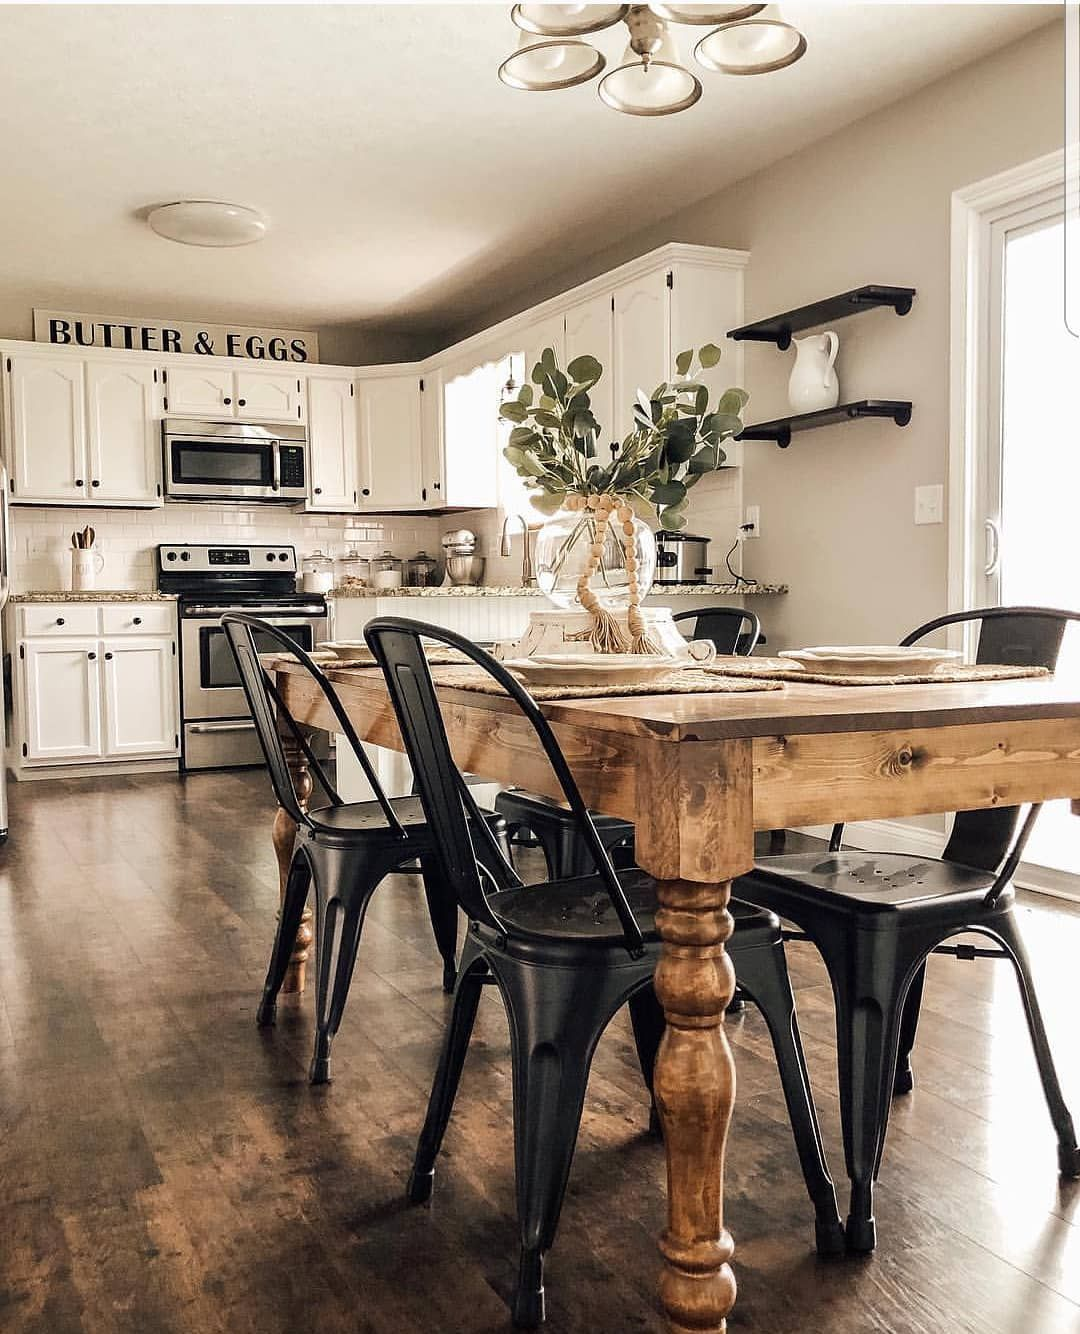 Farmhouse Lookbook On Instagram Those Black Metal Chairs Against That Wood Love Source The Loven Farmhouse Dining Room Table Dining Room Small Home Decor